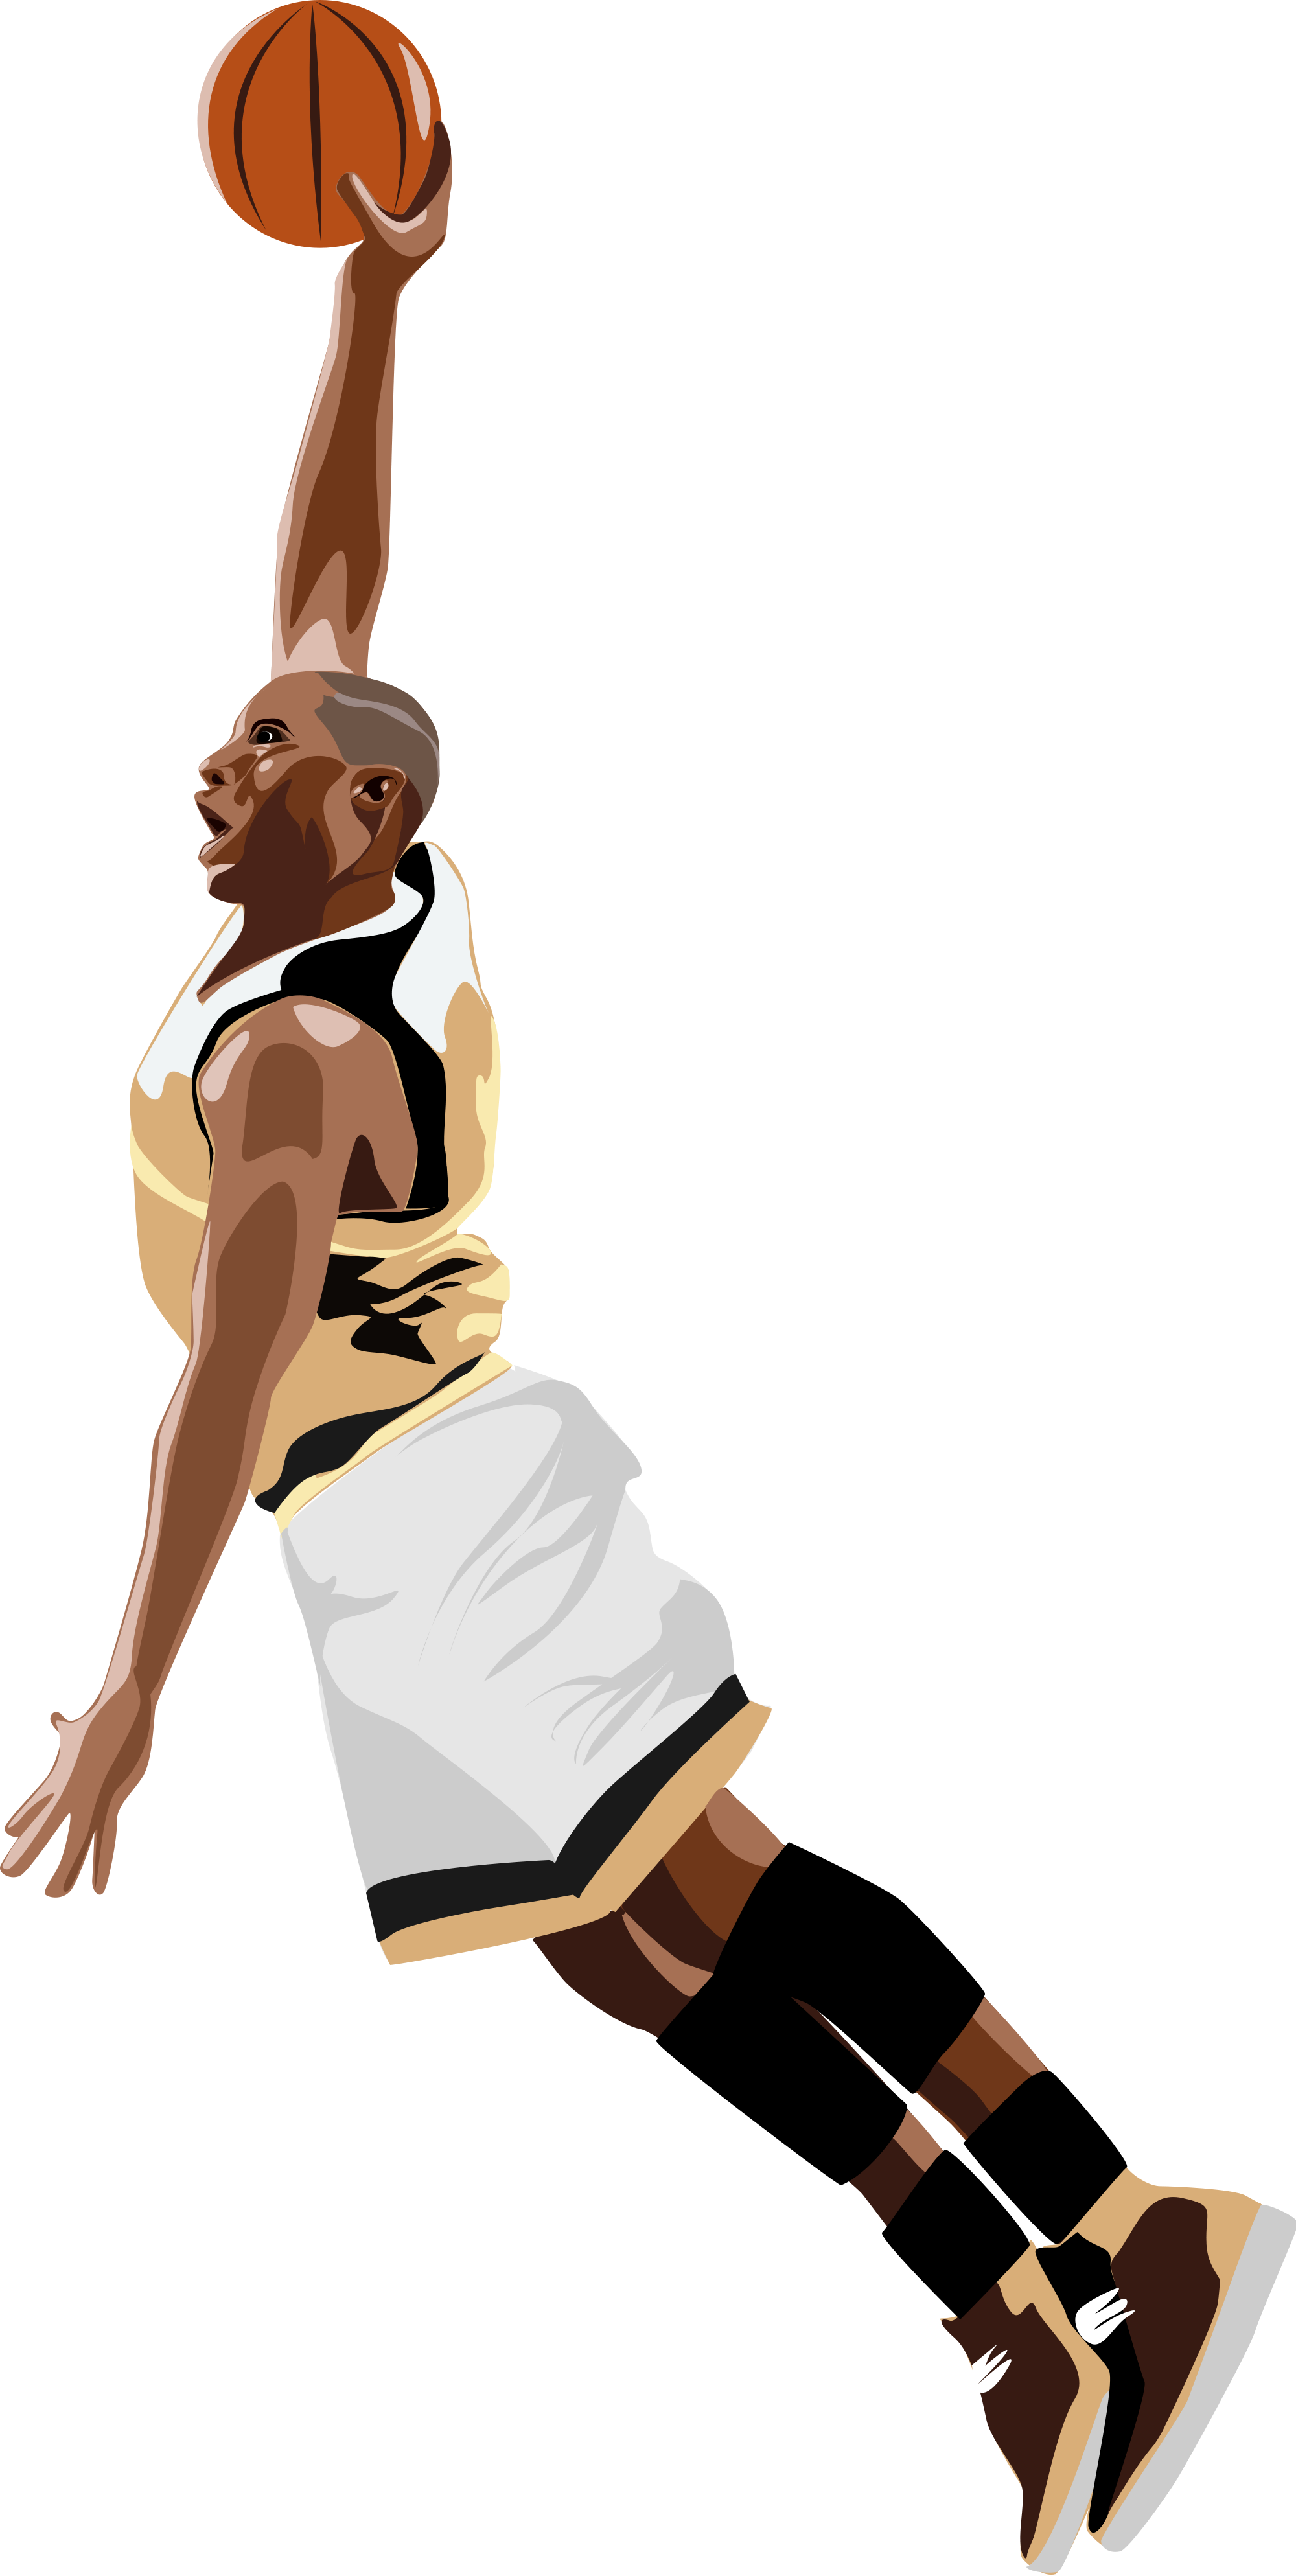 Clipart of basketball players clip art royalty free library File:Slamdunk.svg - Wikimedia Commons clip art royalty free library